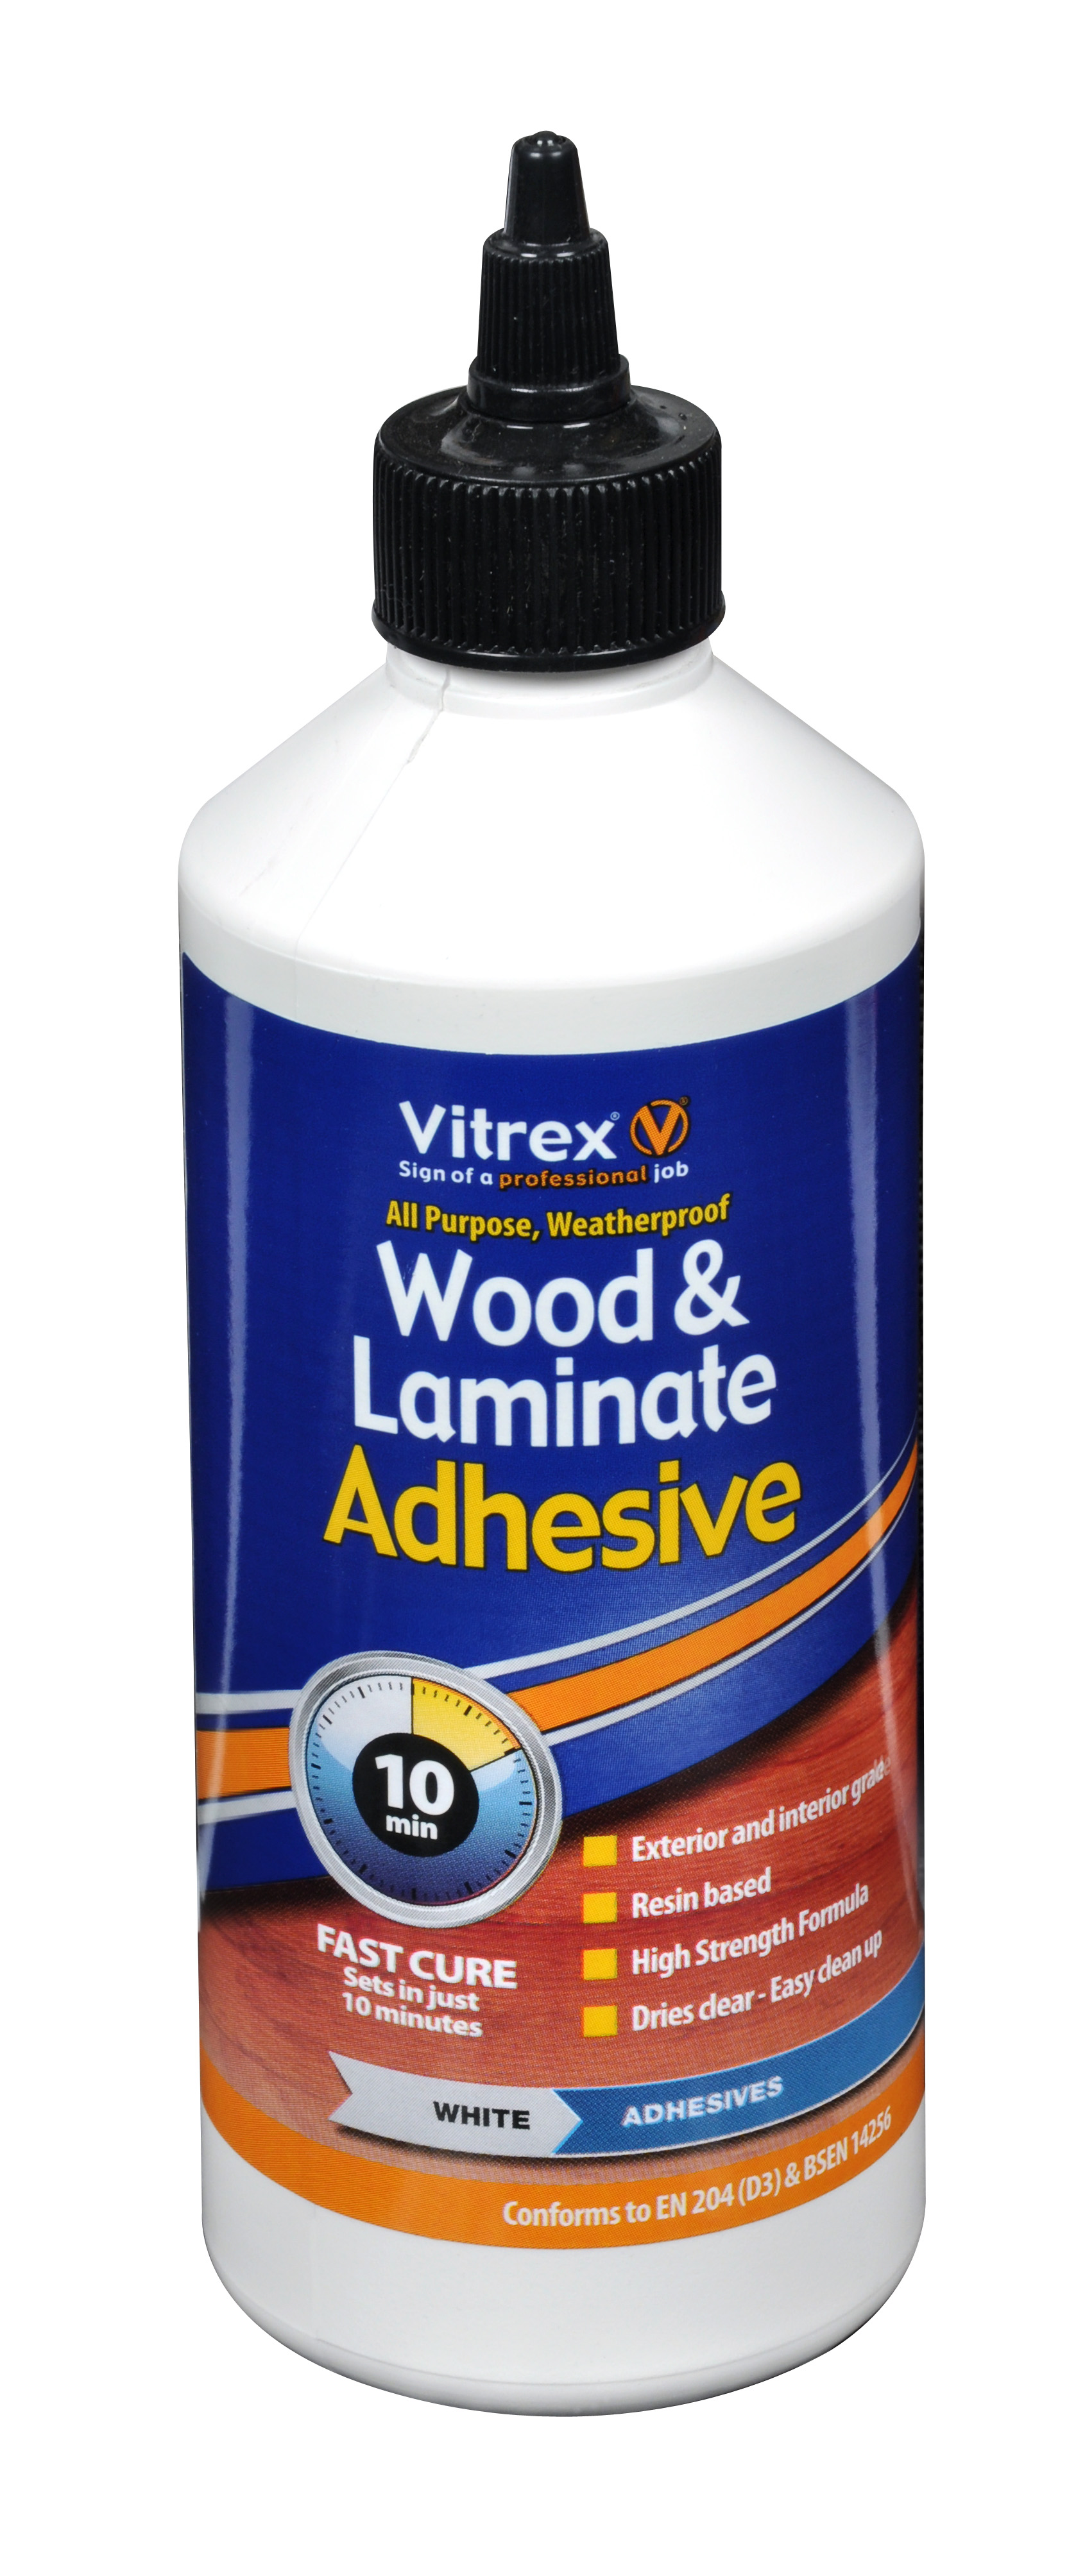 Wood & Laminate Adhesive - White